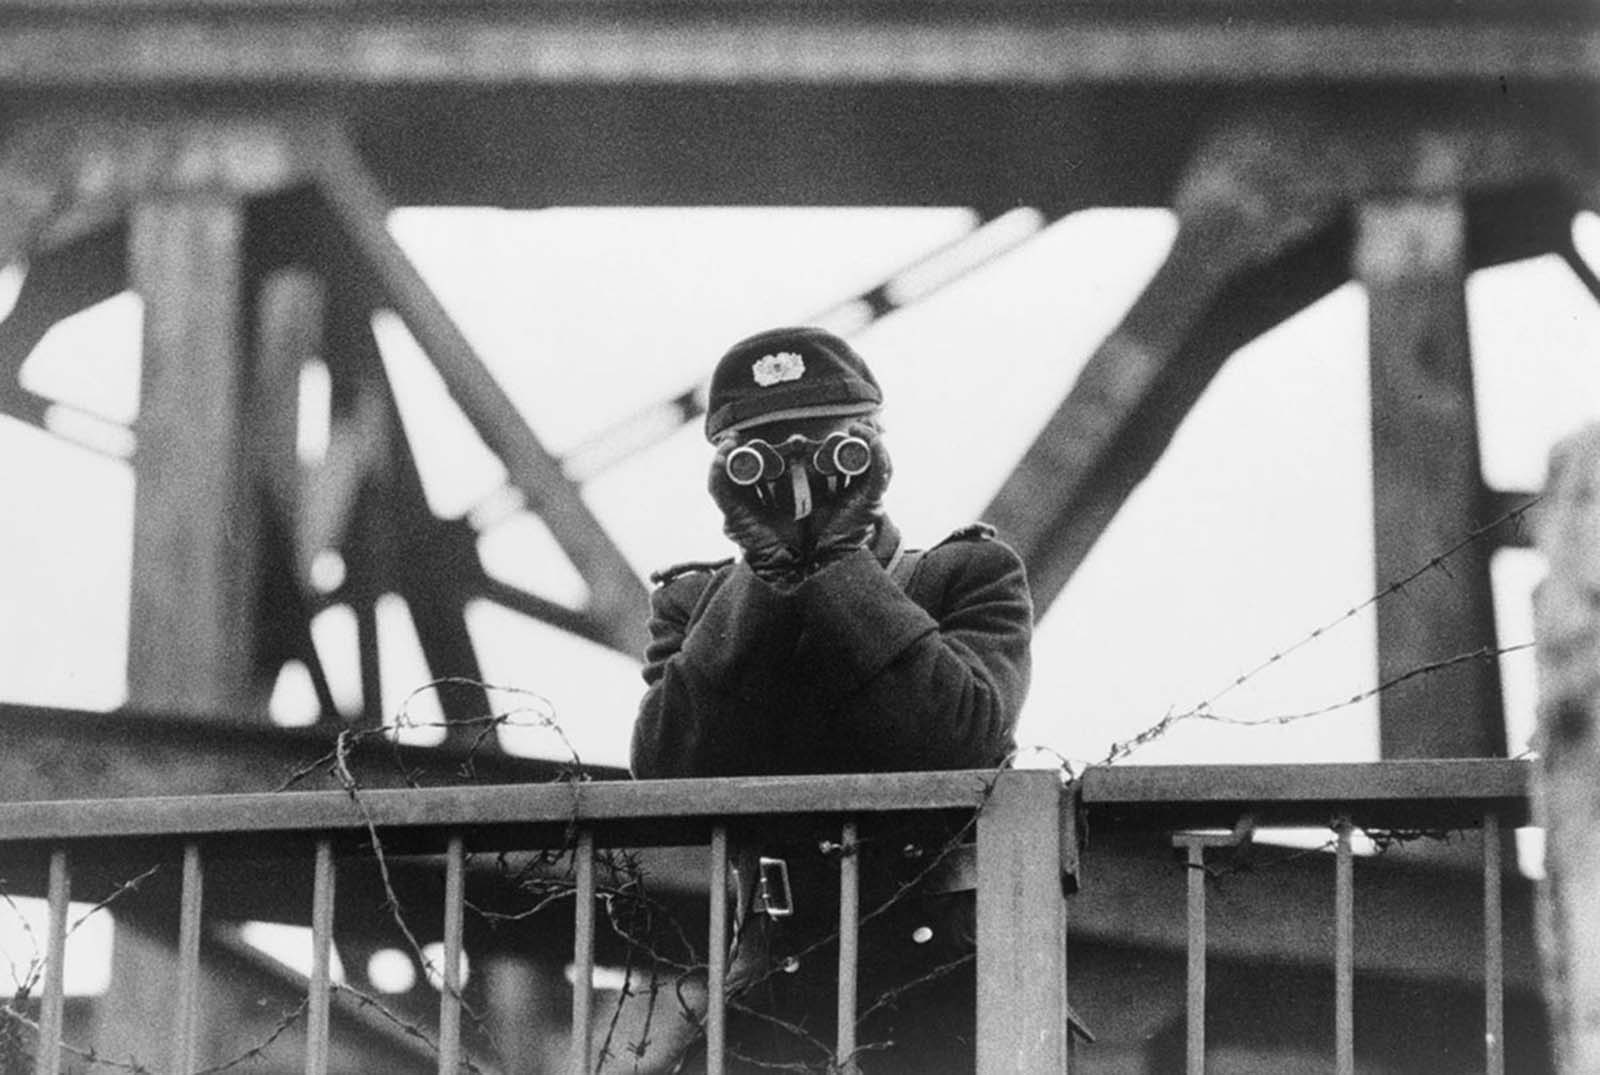 An East German VOPO (Volkspolizei) border policeman uses binoculars while standing guard on one of the bridges linking East and West Berlin, in 1961.